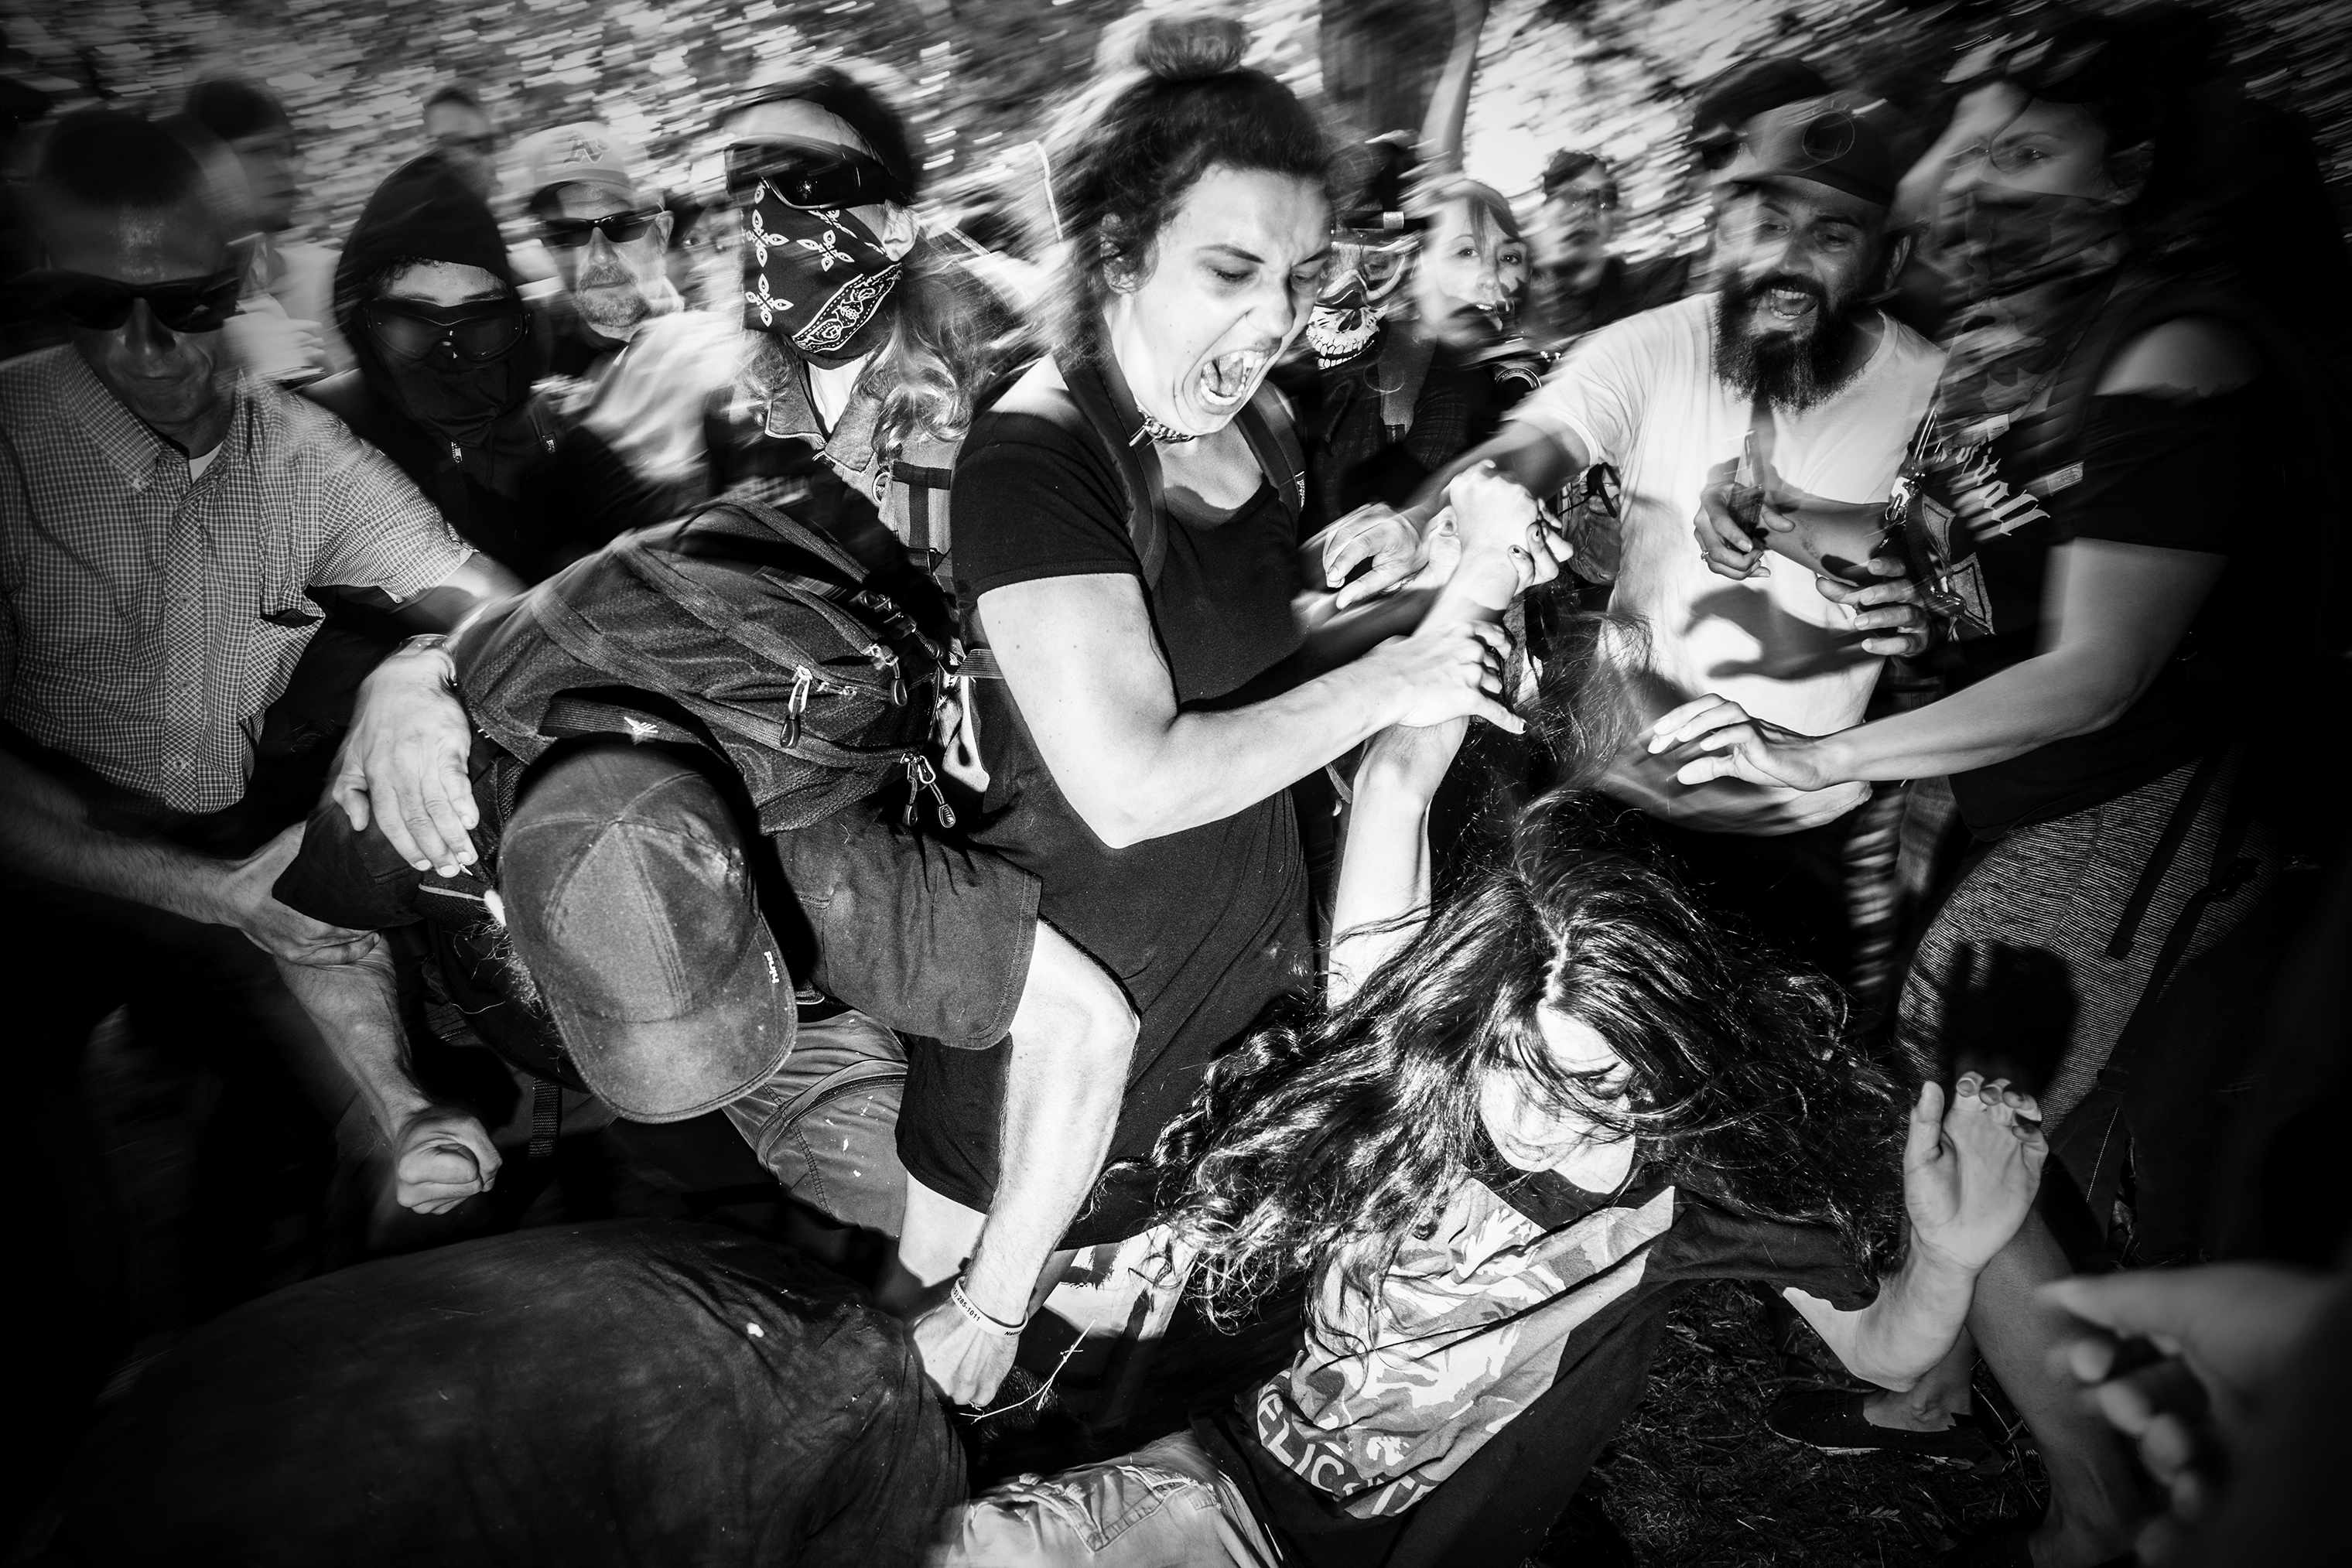 A man wearing a Trump t-shirt is attacked by members of Antifa during a cancelled 'No to Marxism' rally in Berkeley, Calif., on Aug. 27, 2017.